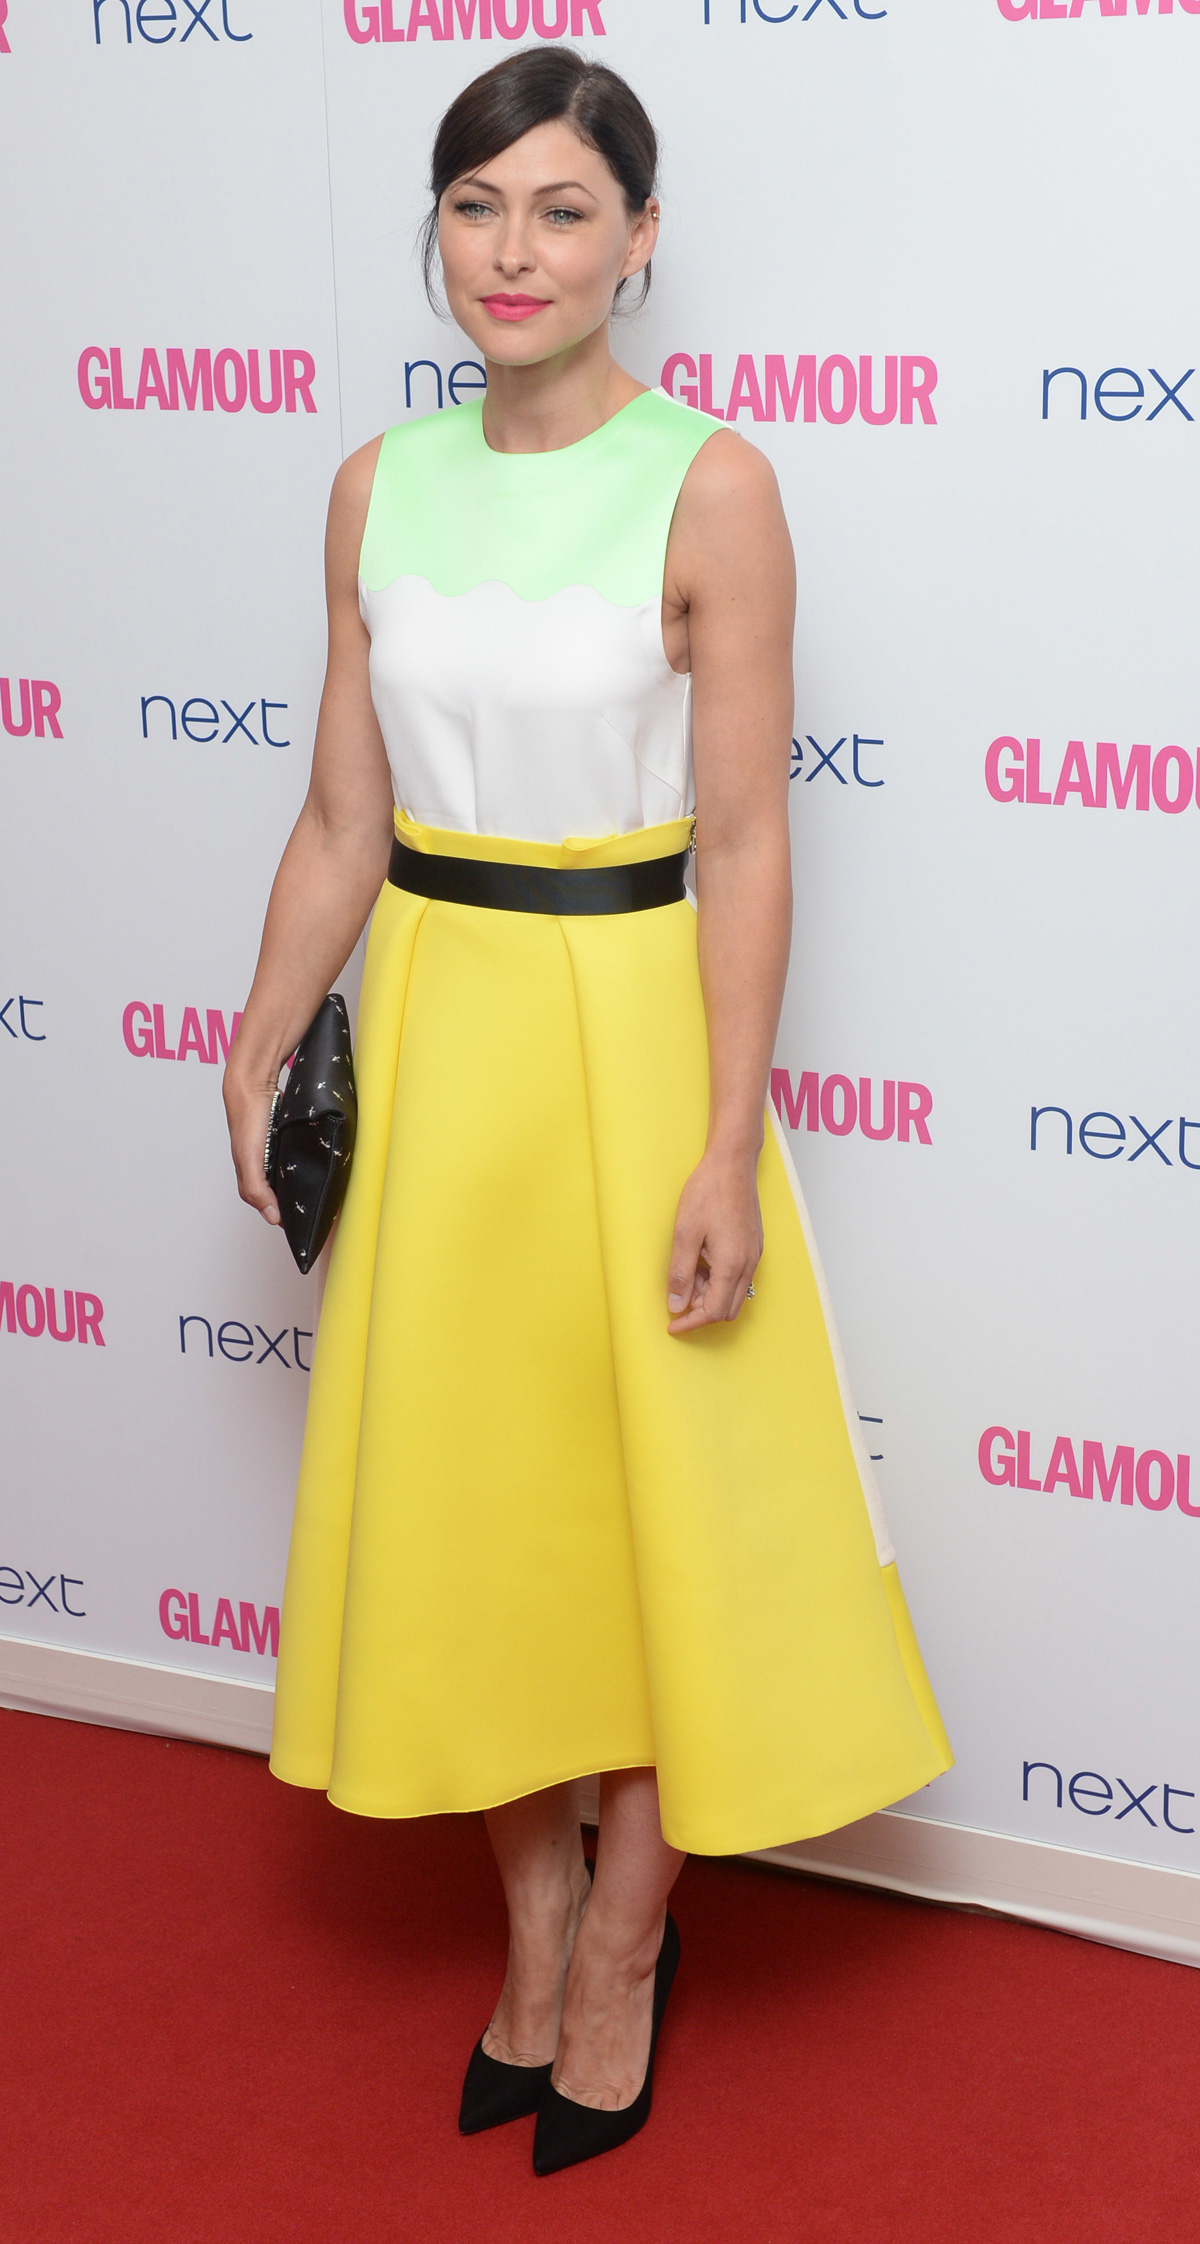 Emma Willis at the Glamour Women of the Year Awards